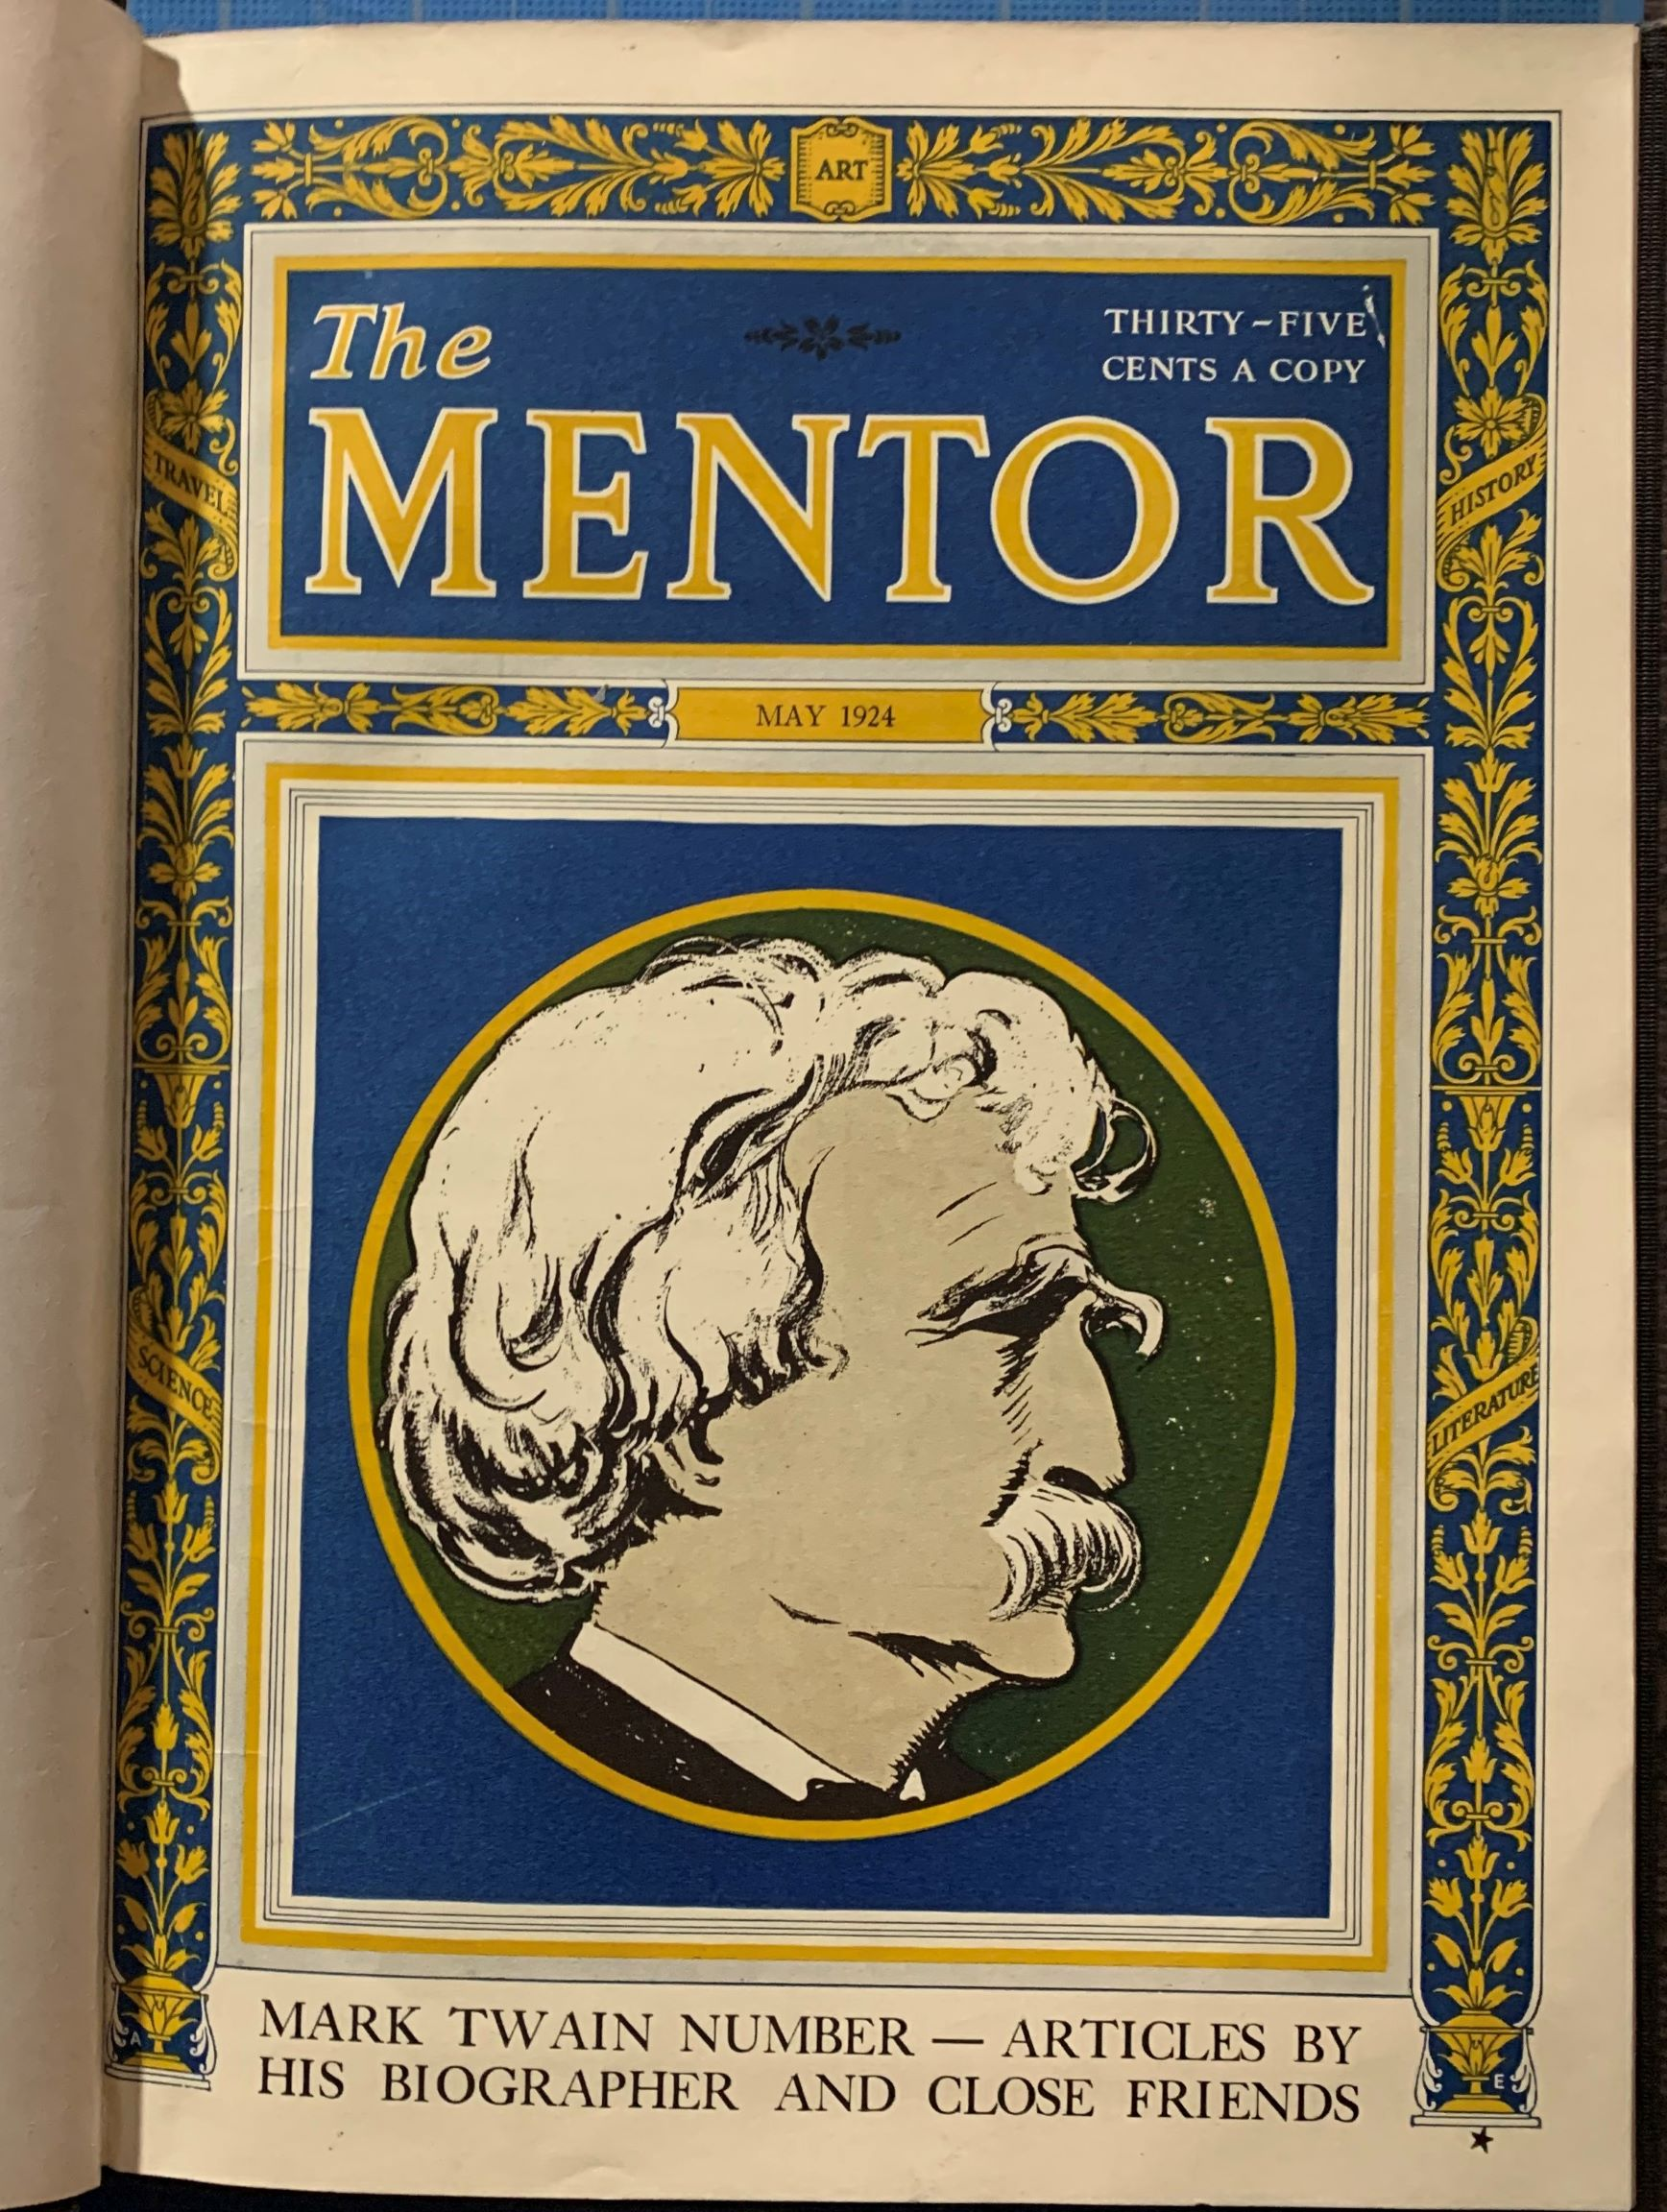 Image for The Mentor, May 1924. Mark Twain Number -  Articles by His Biographer and Friends. (with addes articles bound in).